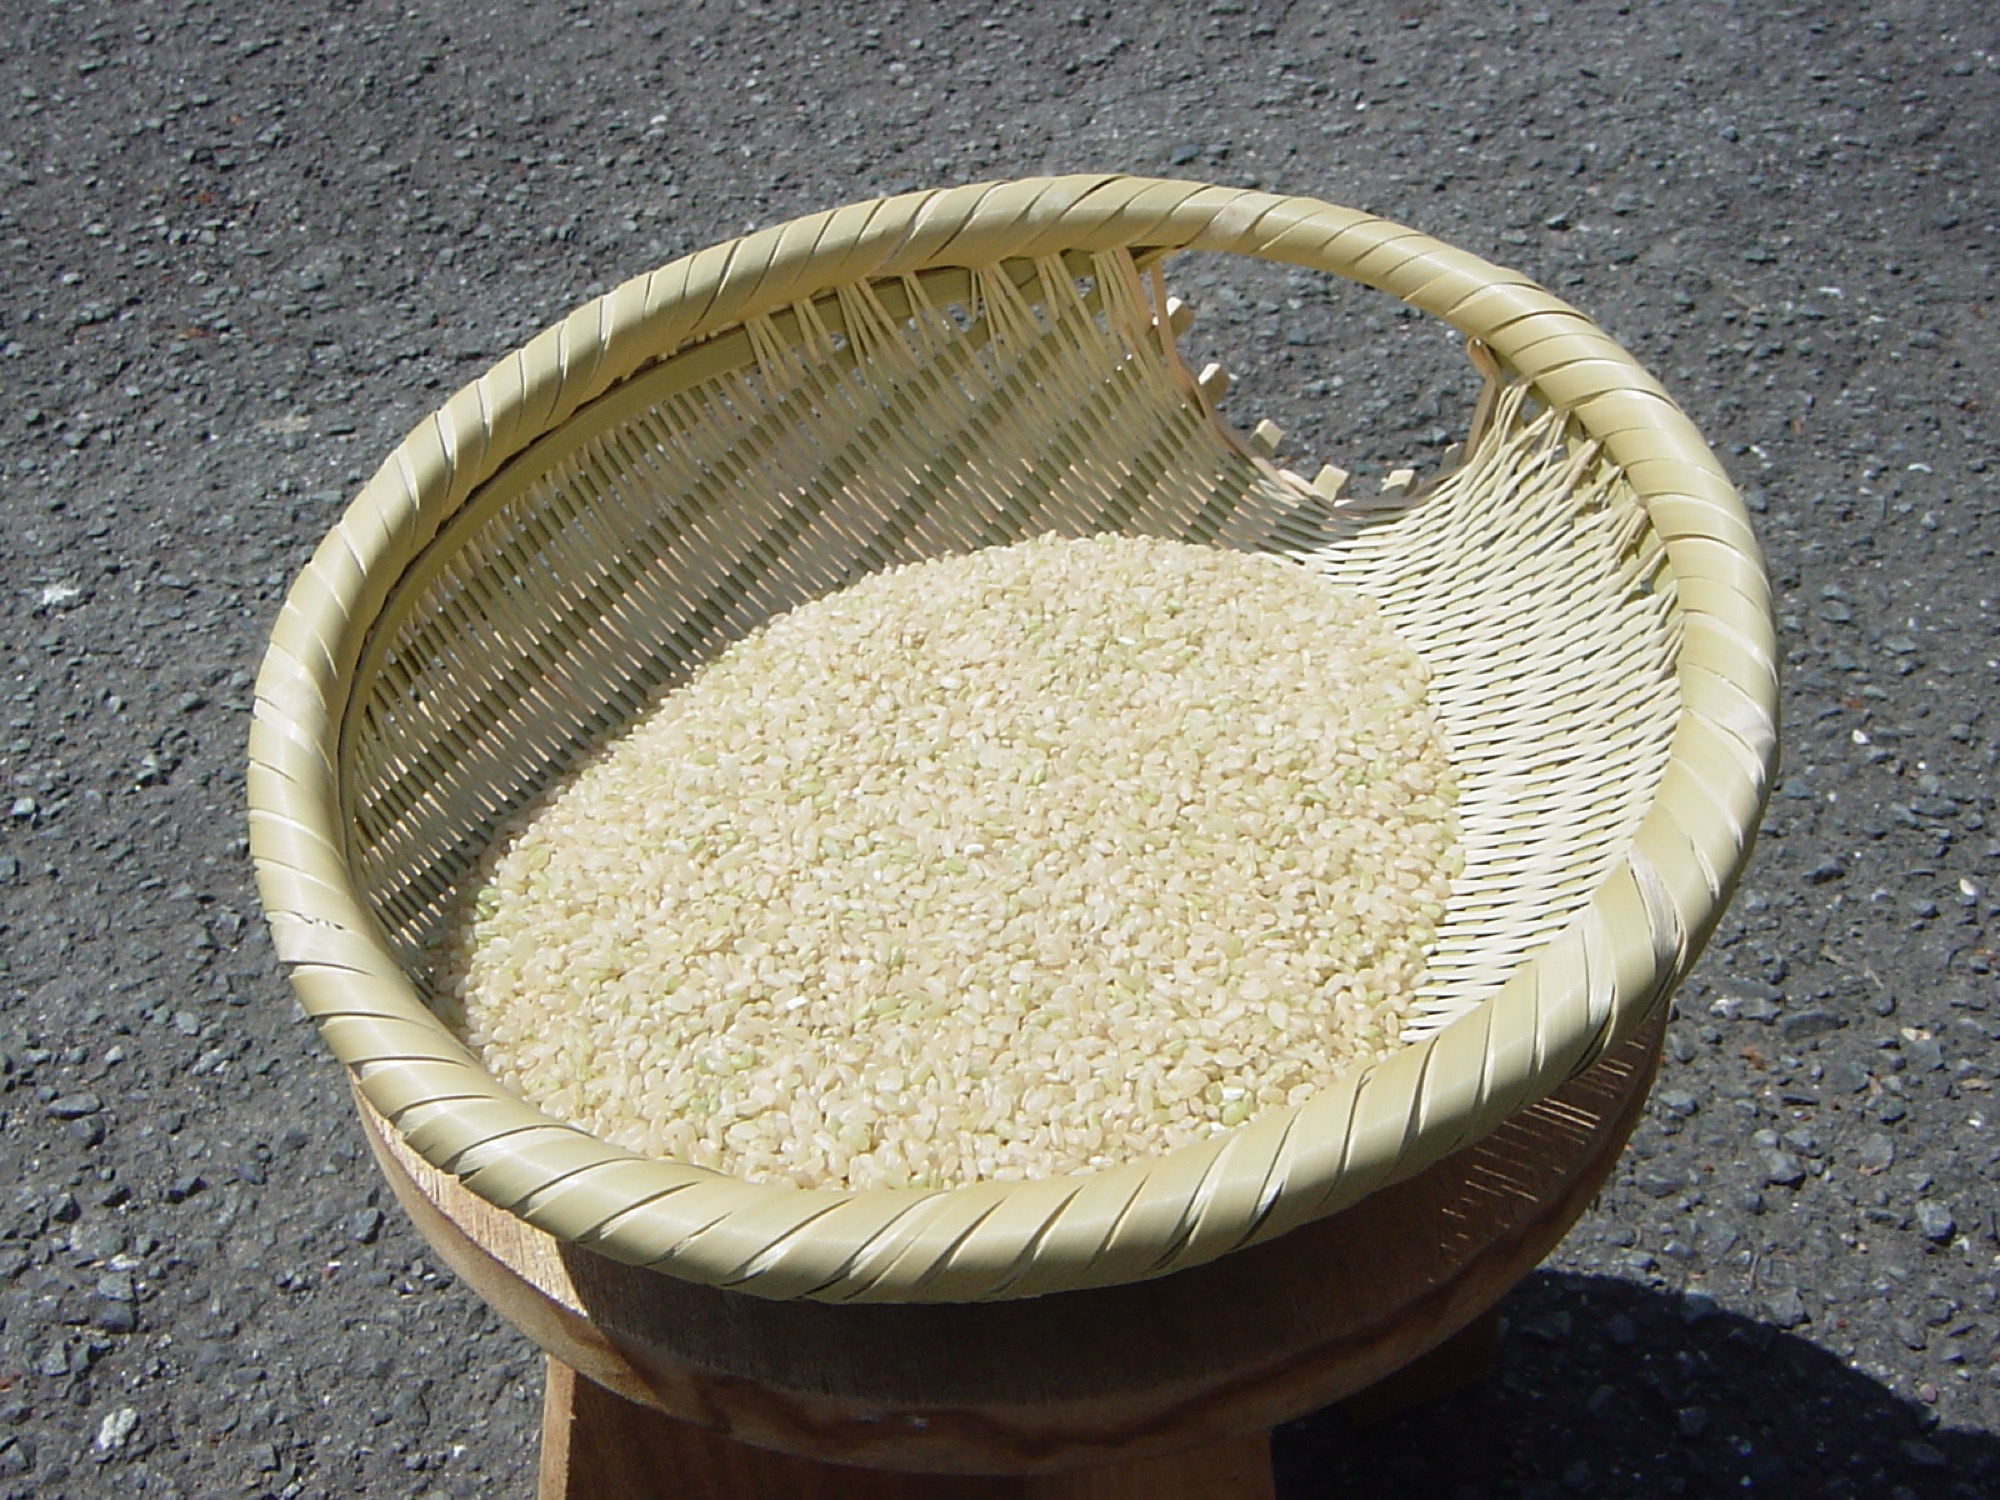 A Japanese basket filled with rice